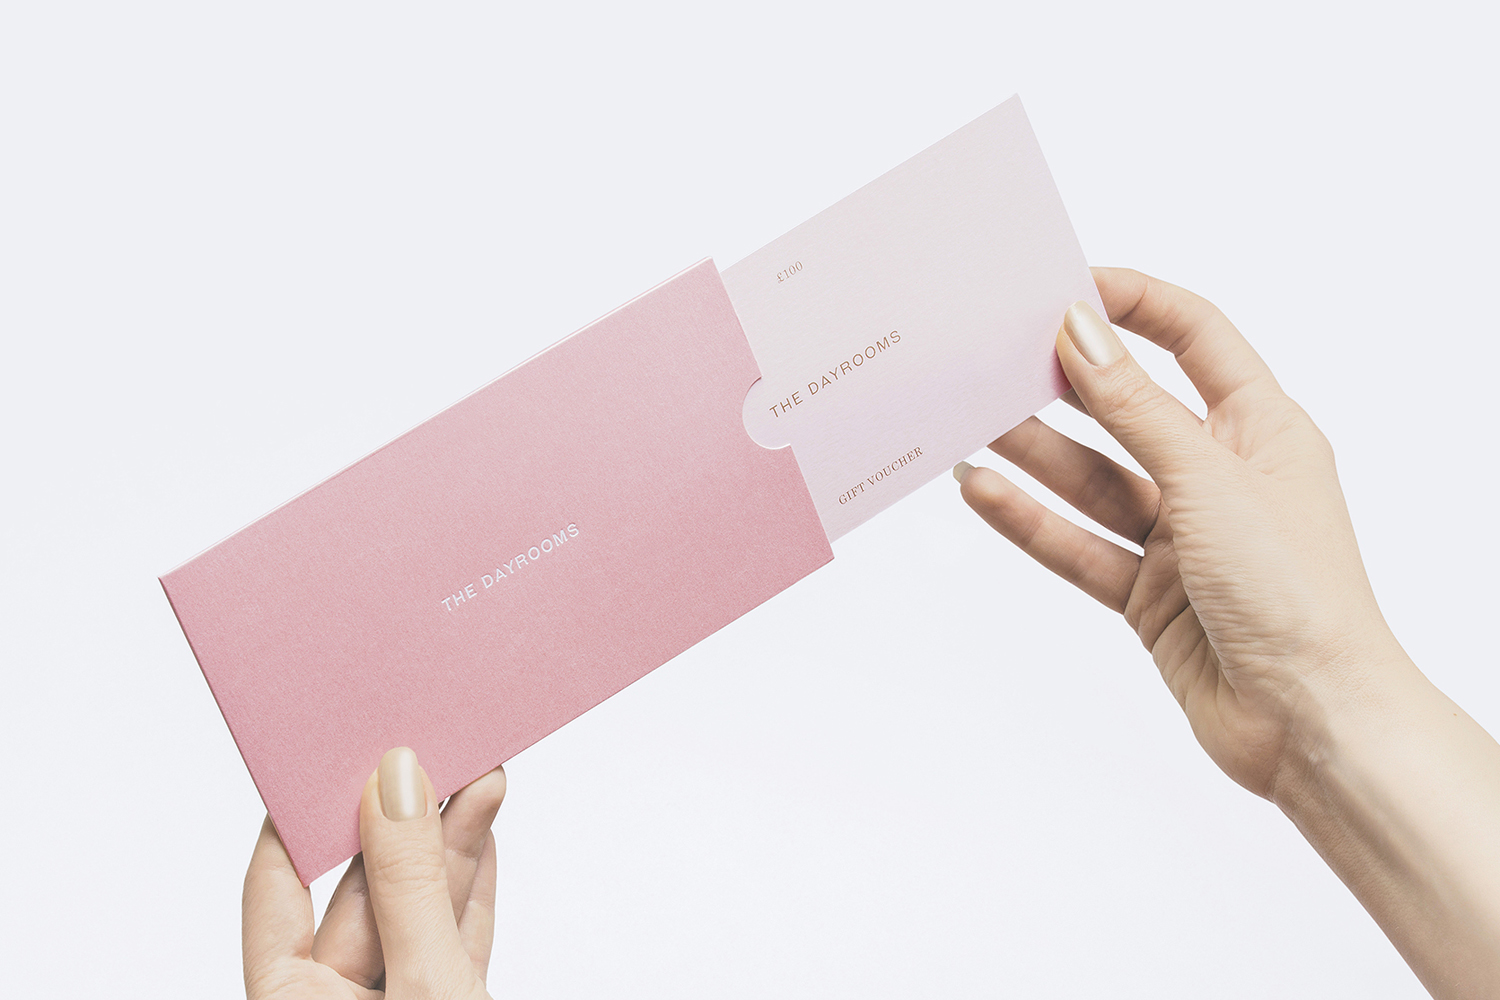 Gift card and sleeve designed by Two Times Elliott for Australian fashion boutique in London The Dayrooms